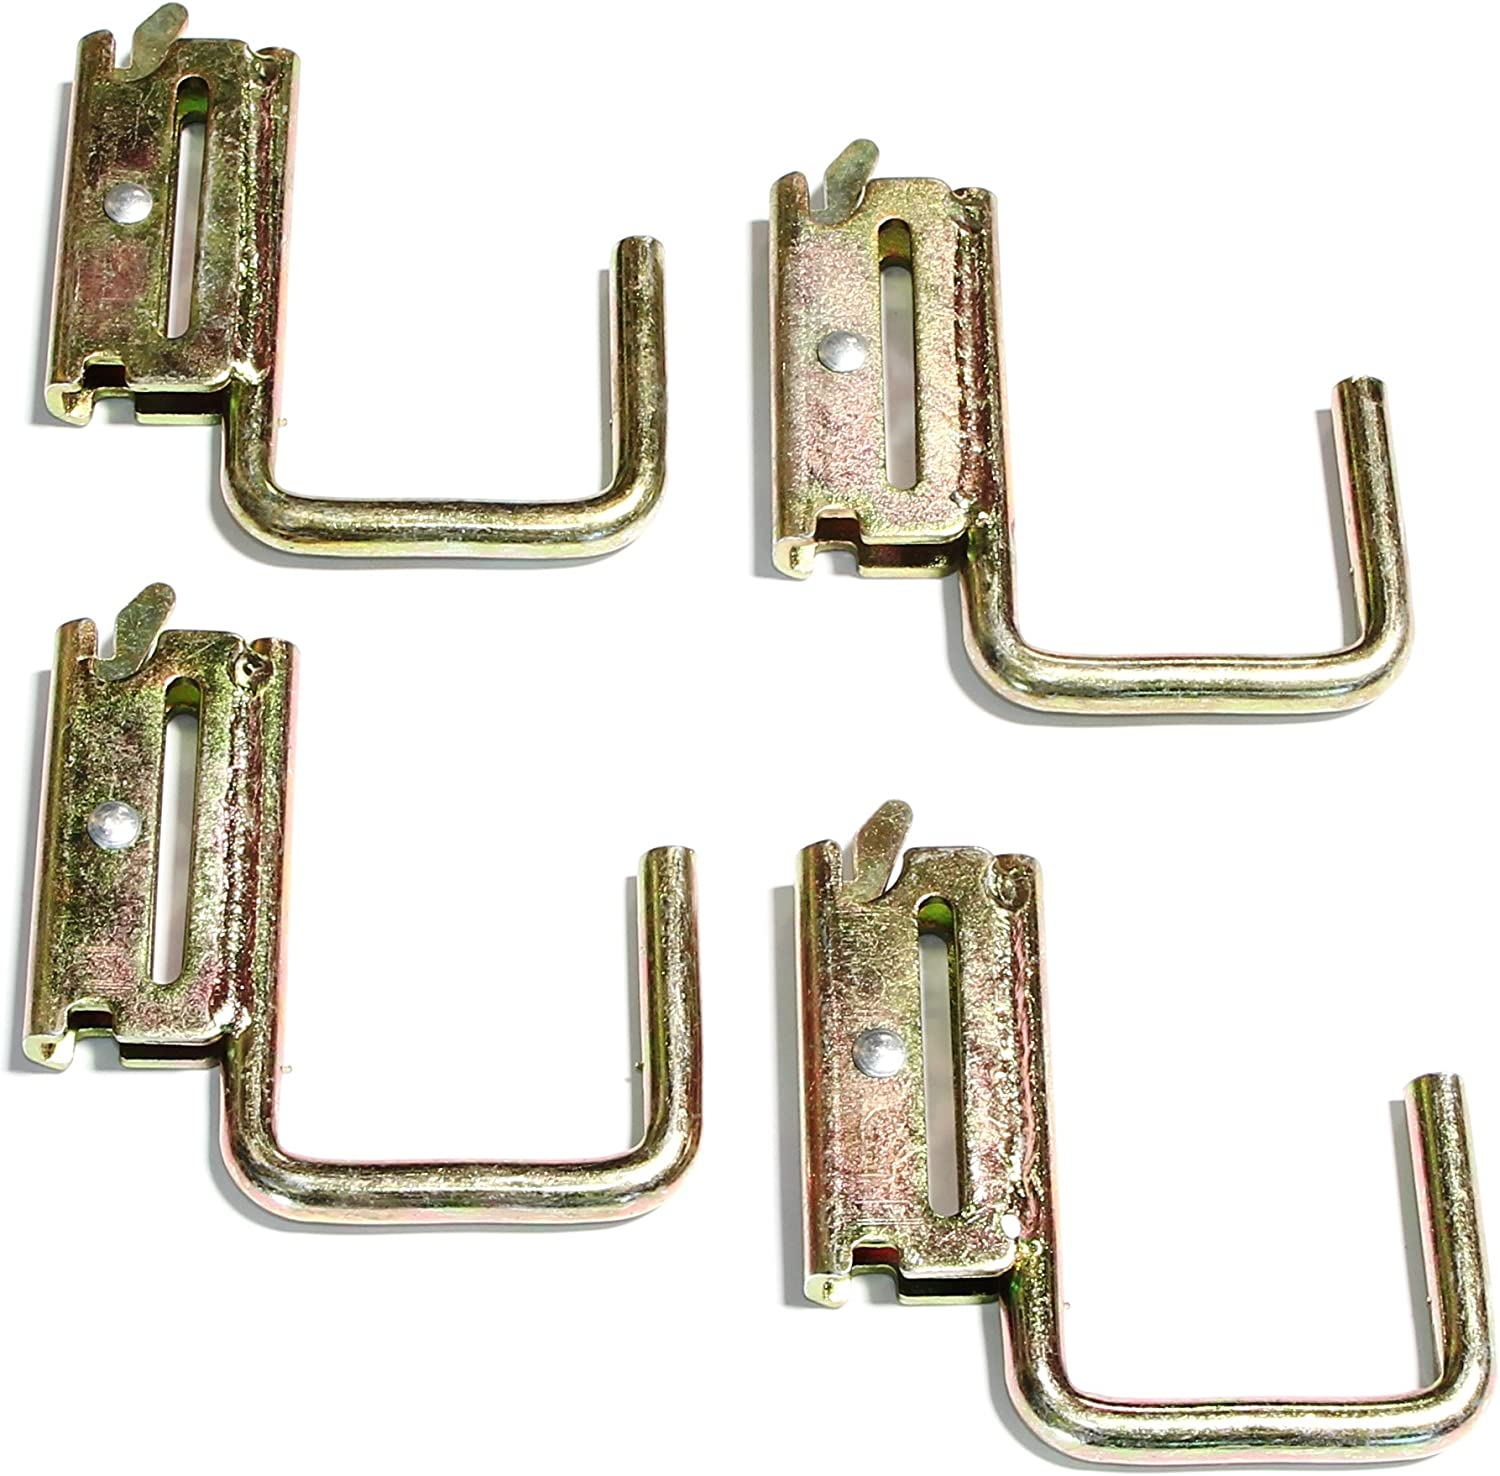 Pack of 4 E-Track Steel JHook Tie Down with Spring Fitting WorldPac